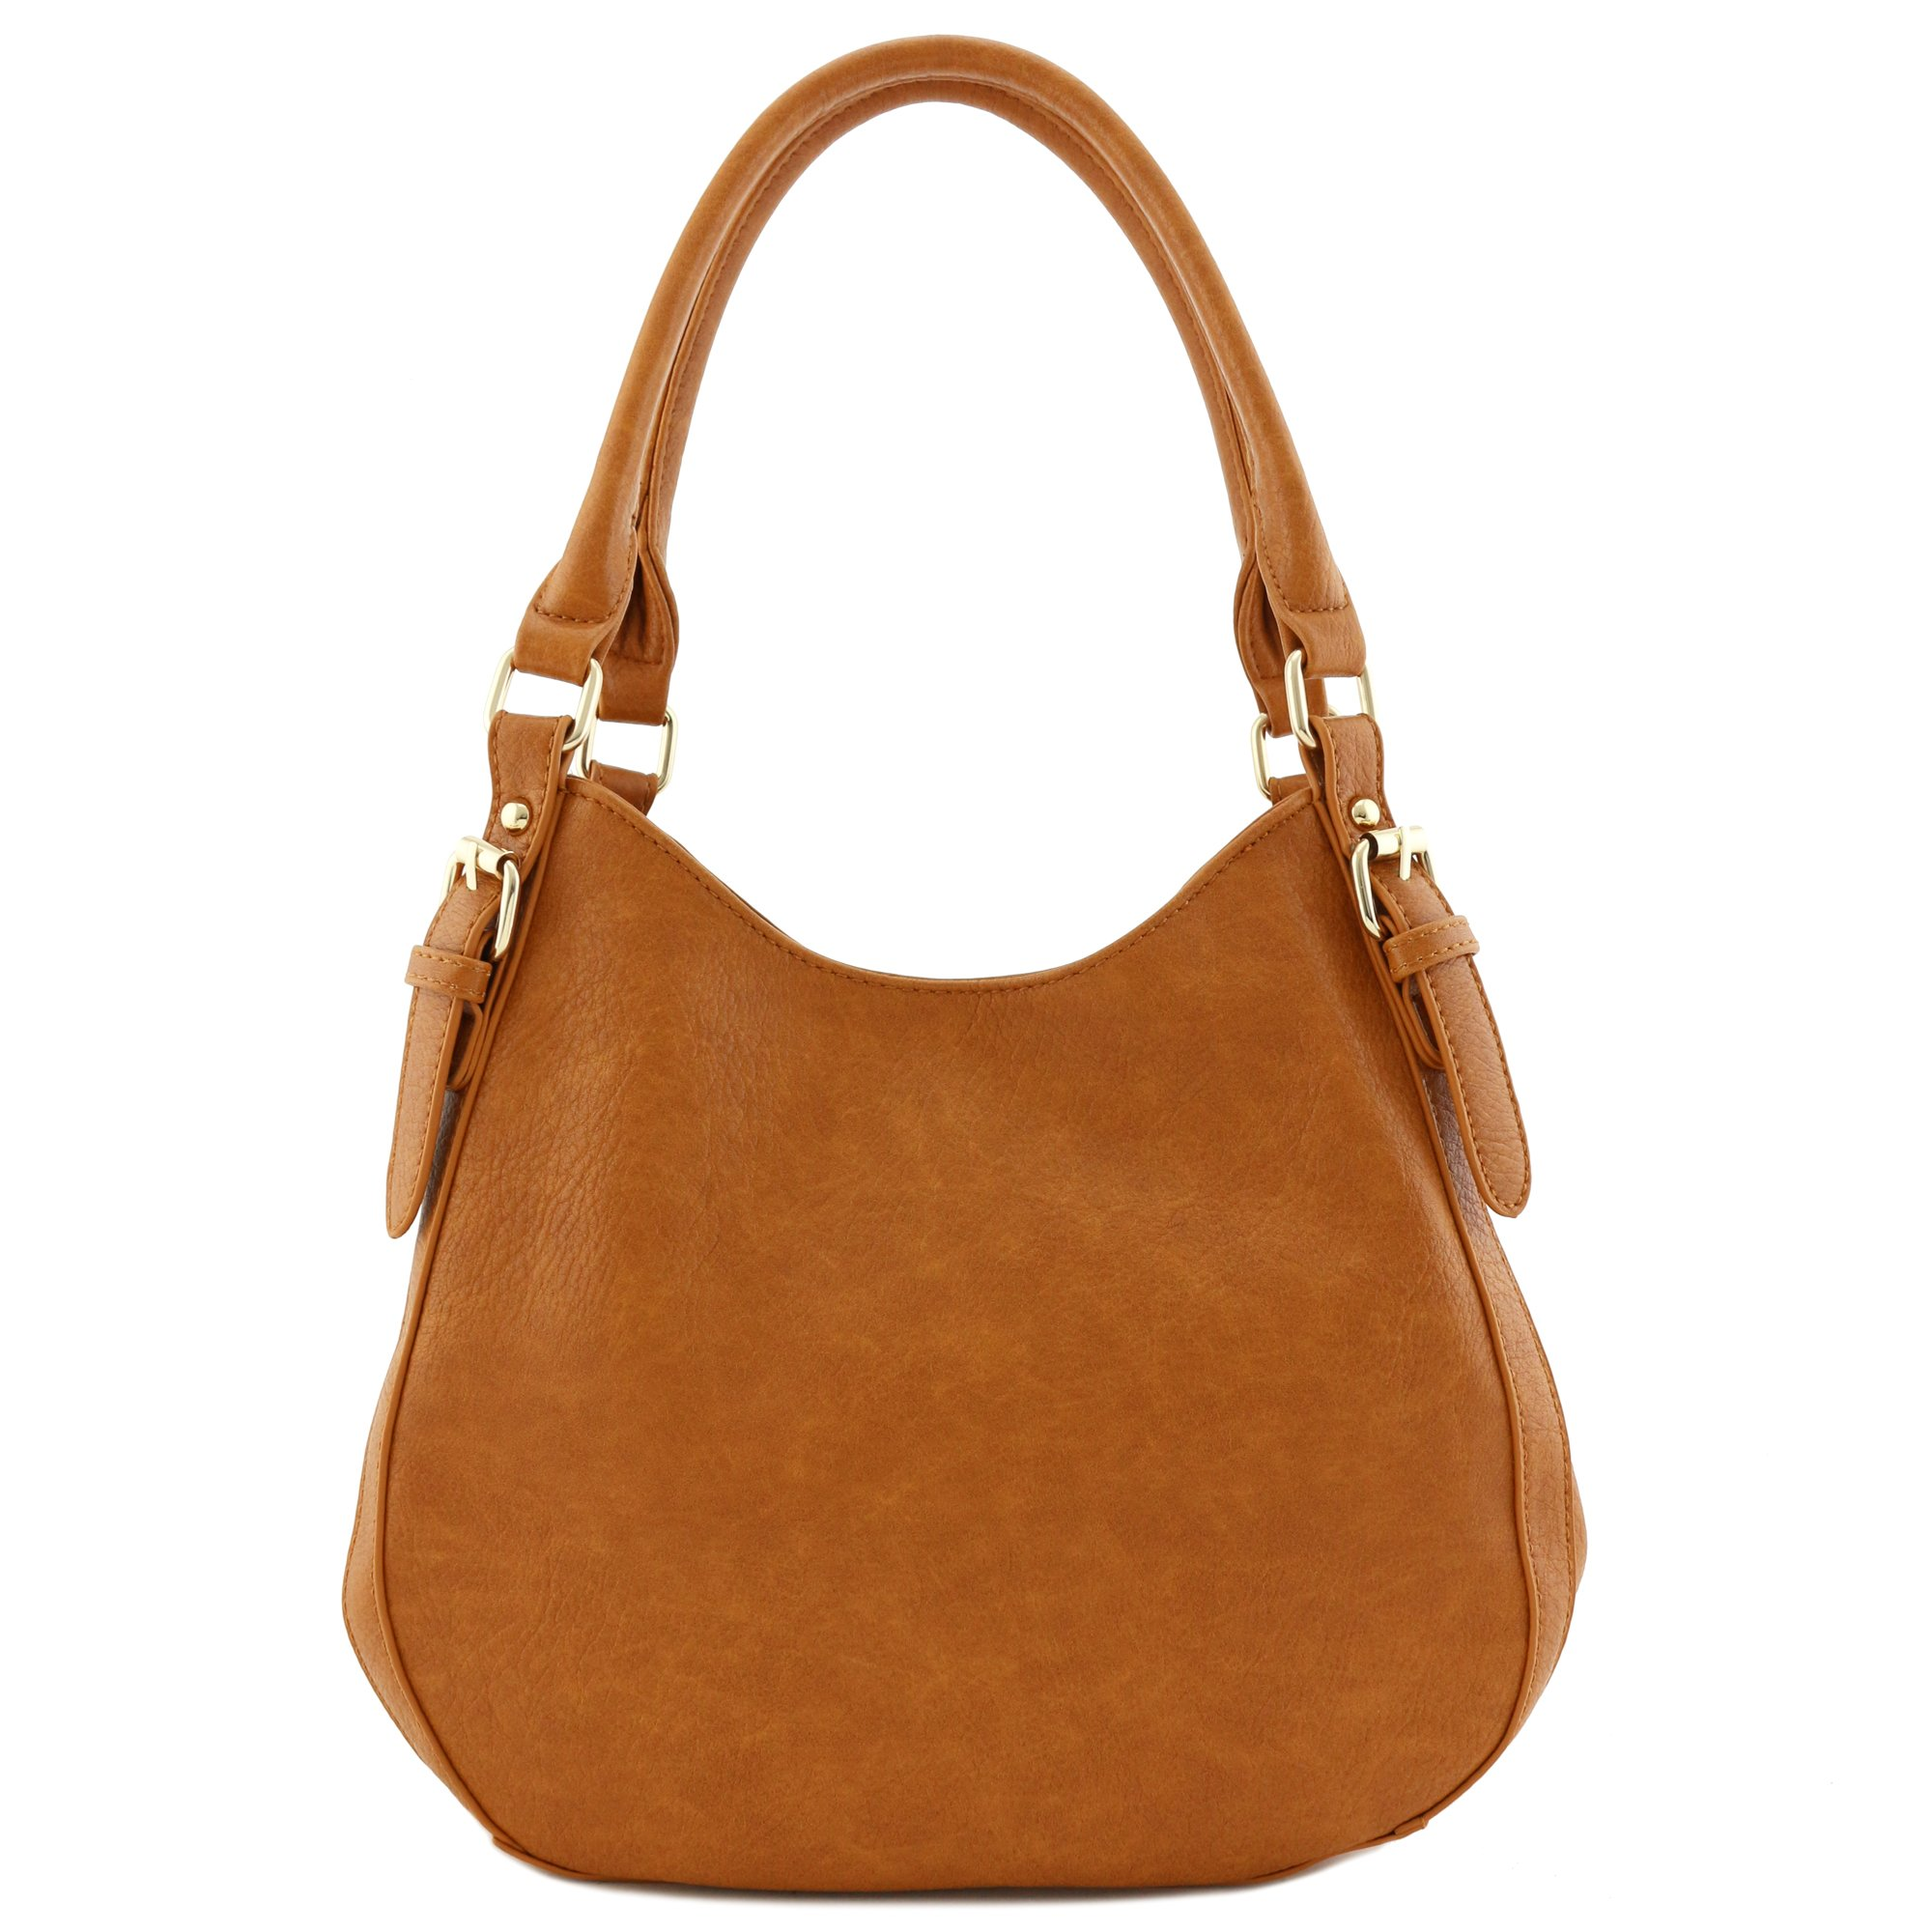 Light-weight 3 Compartment Faux Leather Medium Hobo Bag Tan by FashionPuzzle (Image #2)